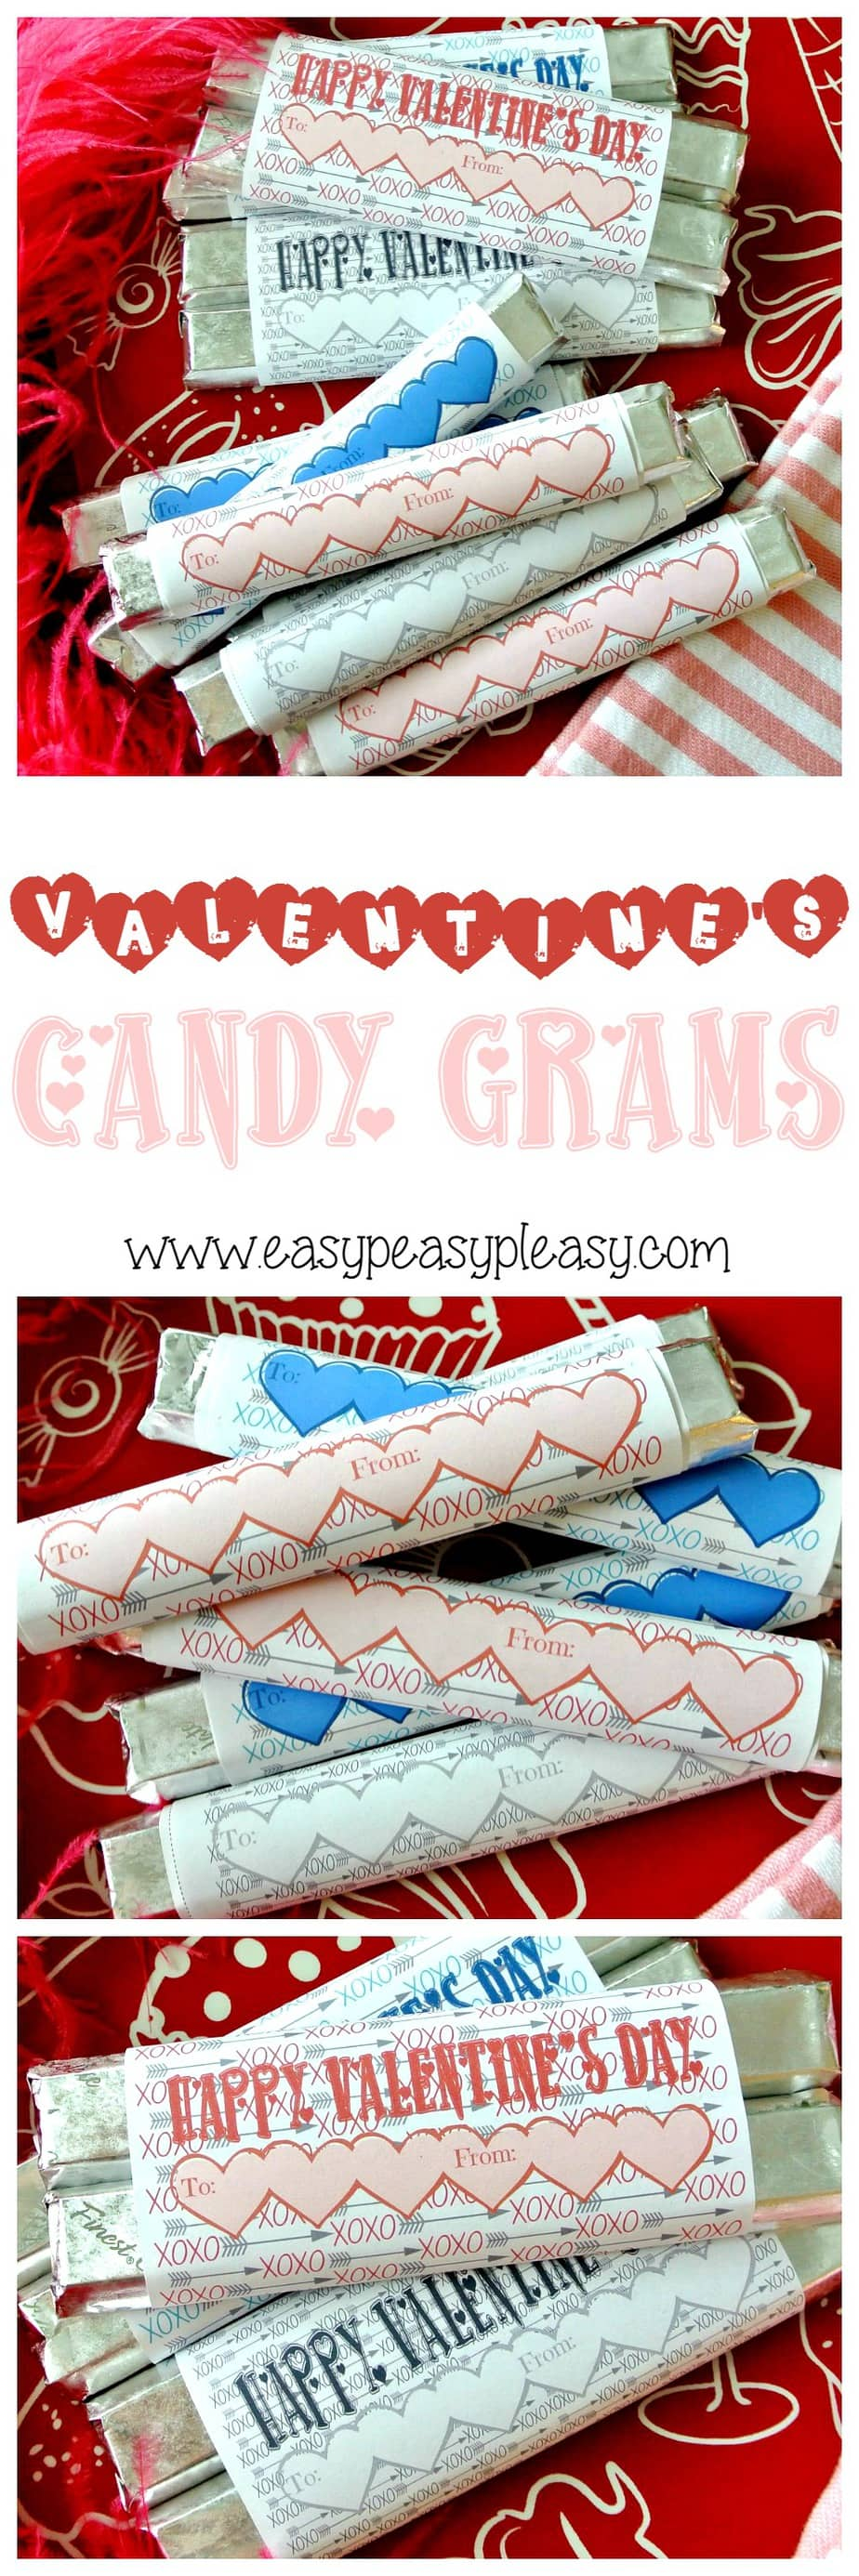 Free Printable Valentine's Day Candy Gram for everyone to use! I also have a set that works great for PTOPTA fundraisers! Come check it out!